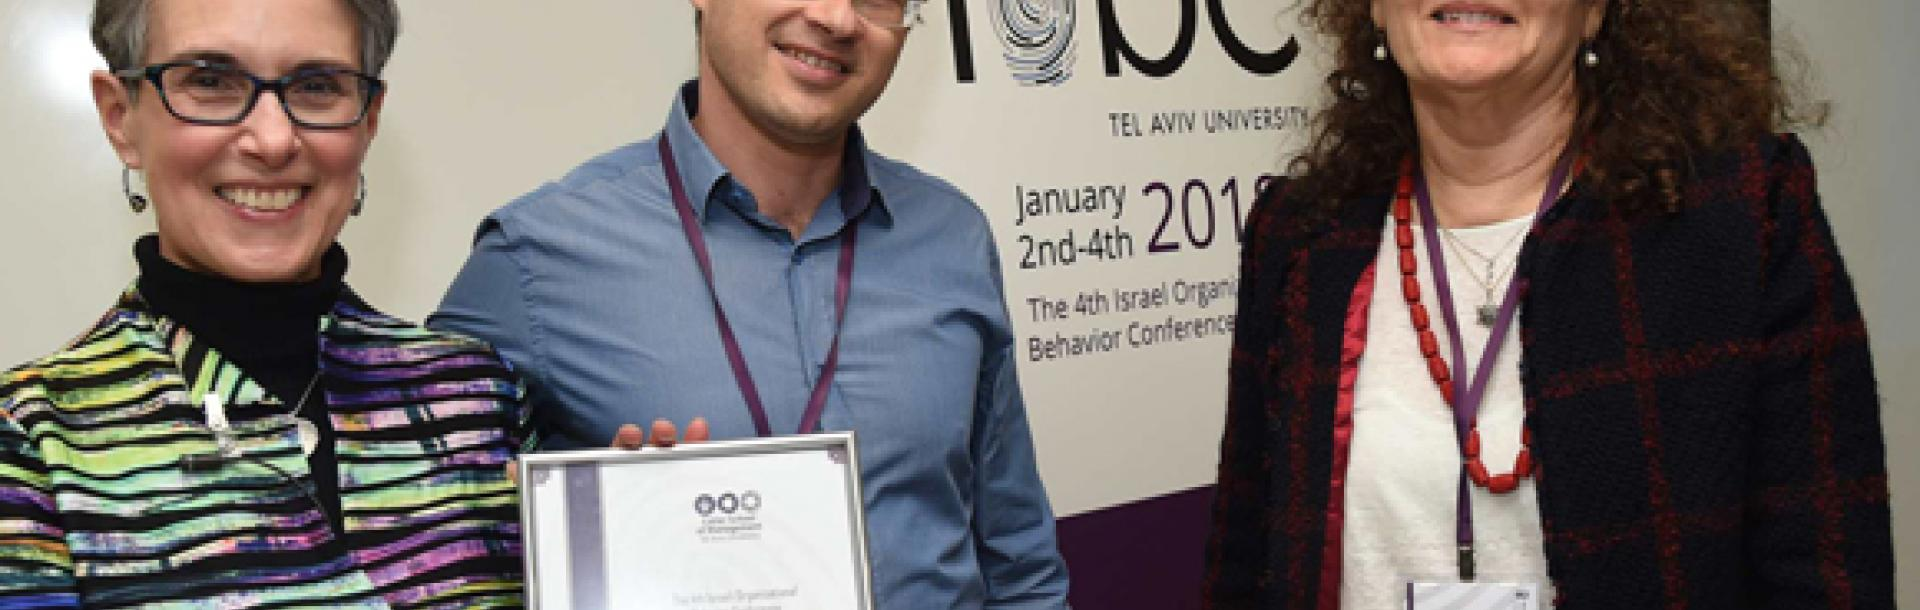 Fourth Israel Organizational Behavior Conference (IOBC) at TAU's Coller School of Management